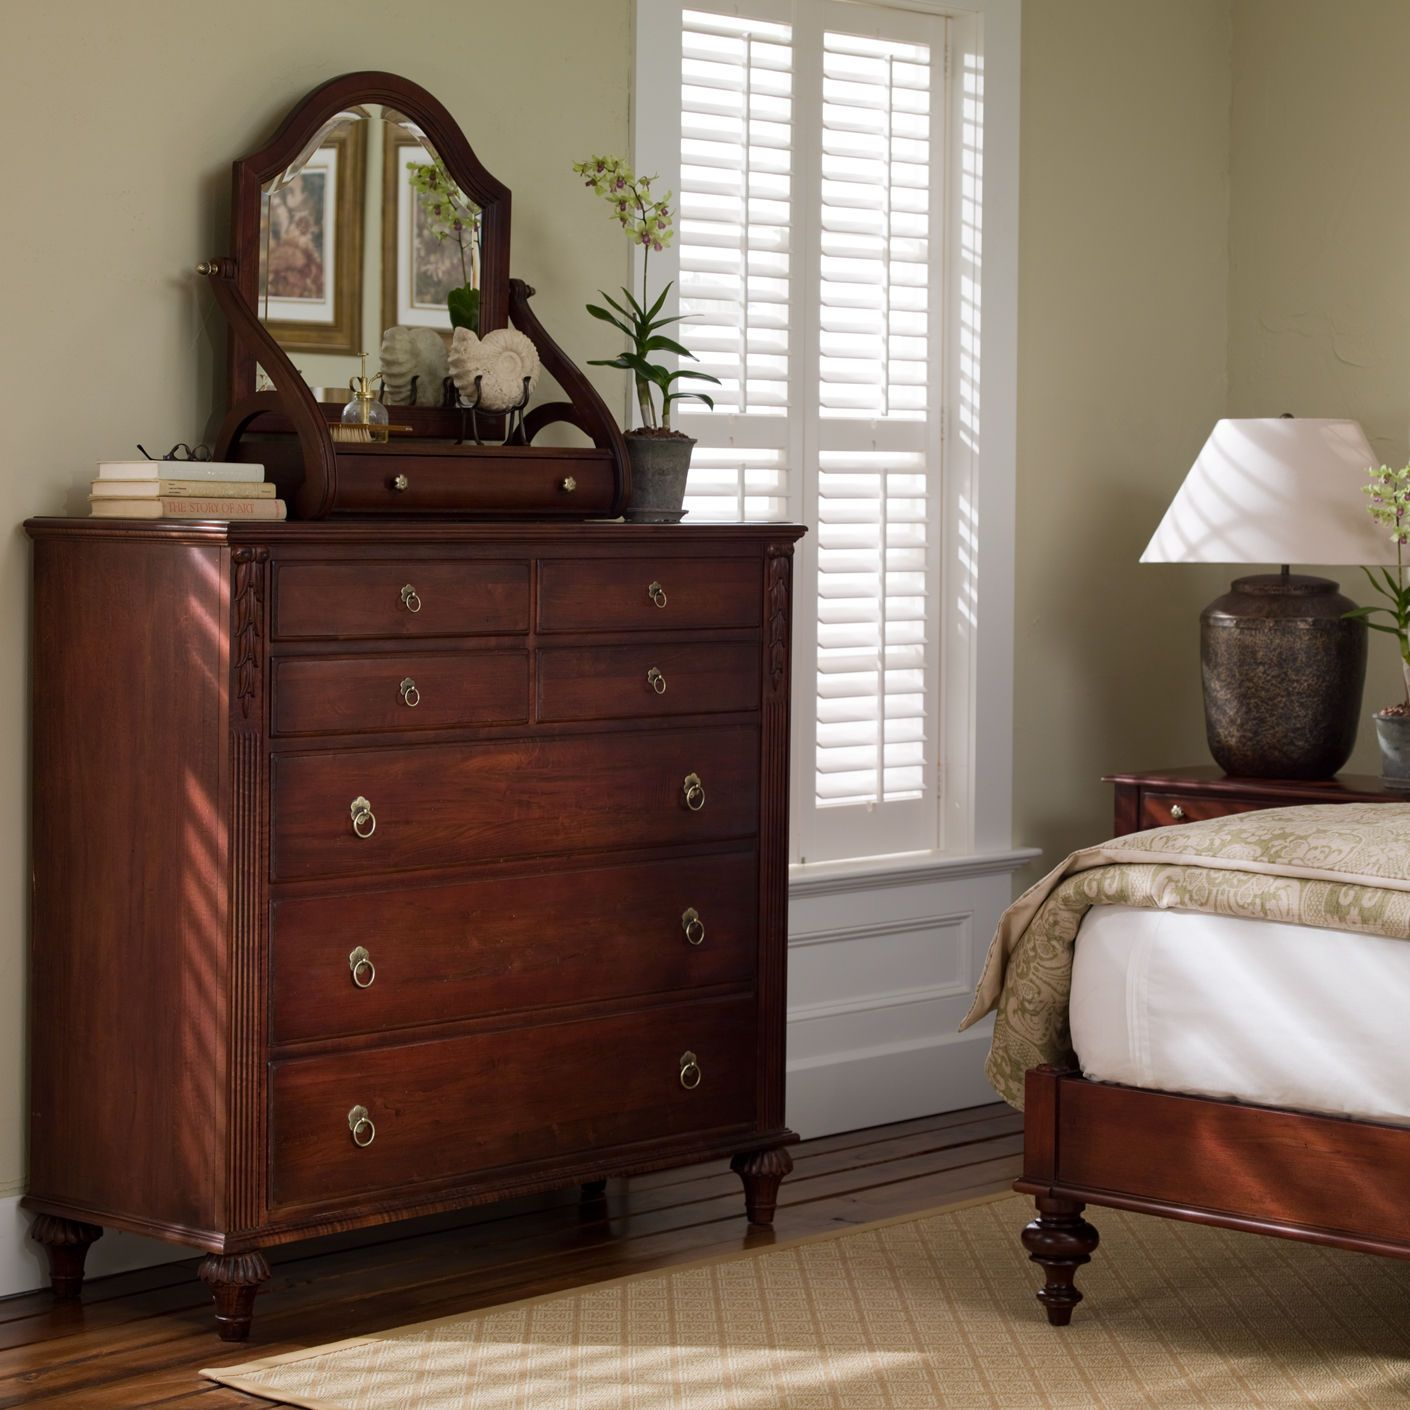 Dawson tall dresser ethan allen us home ideas for Ethan allen furniture